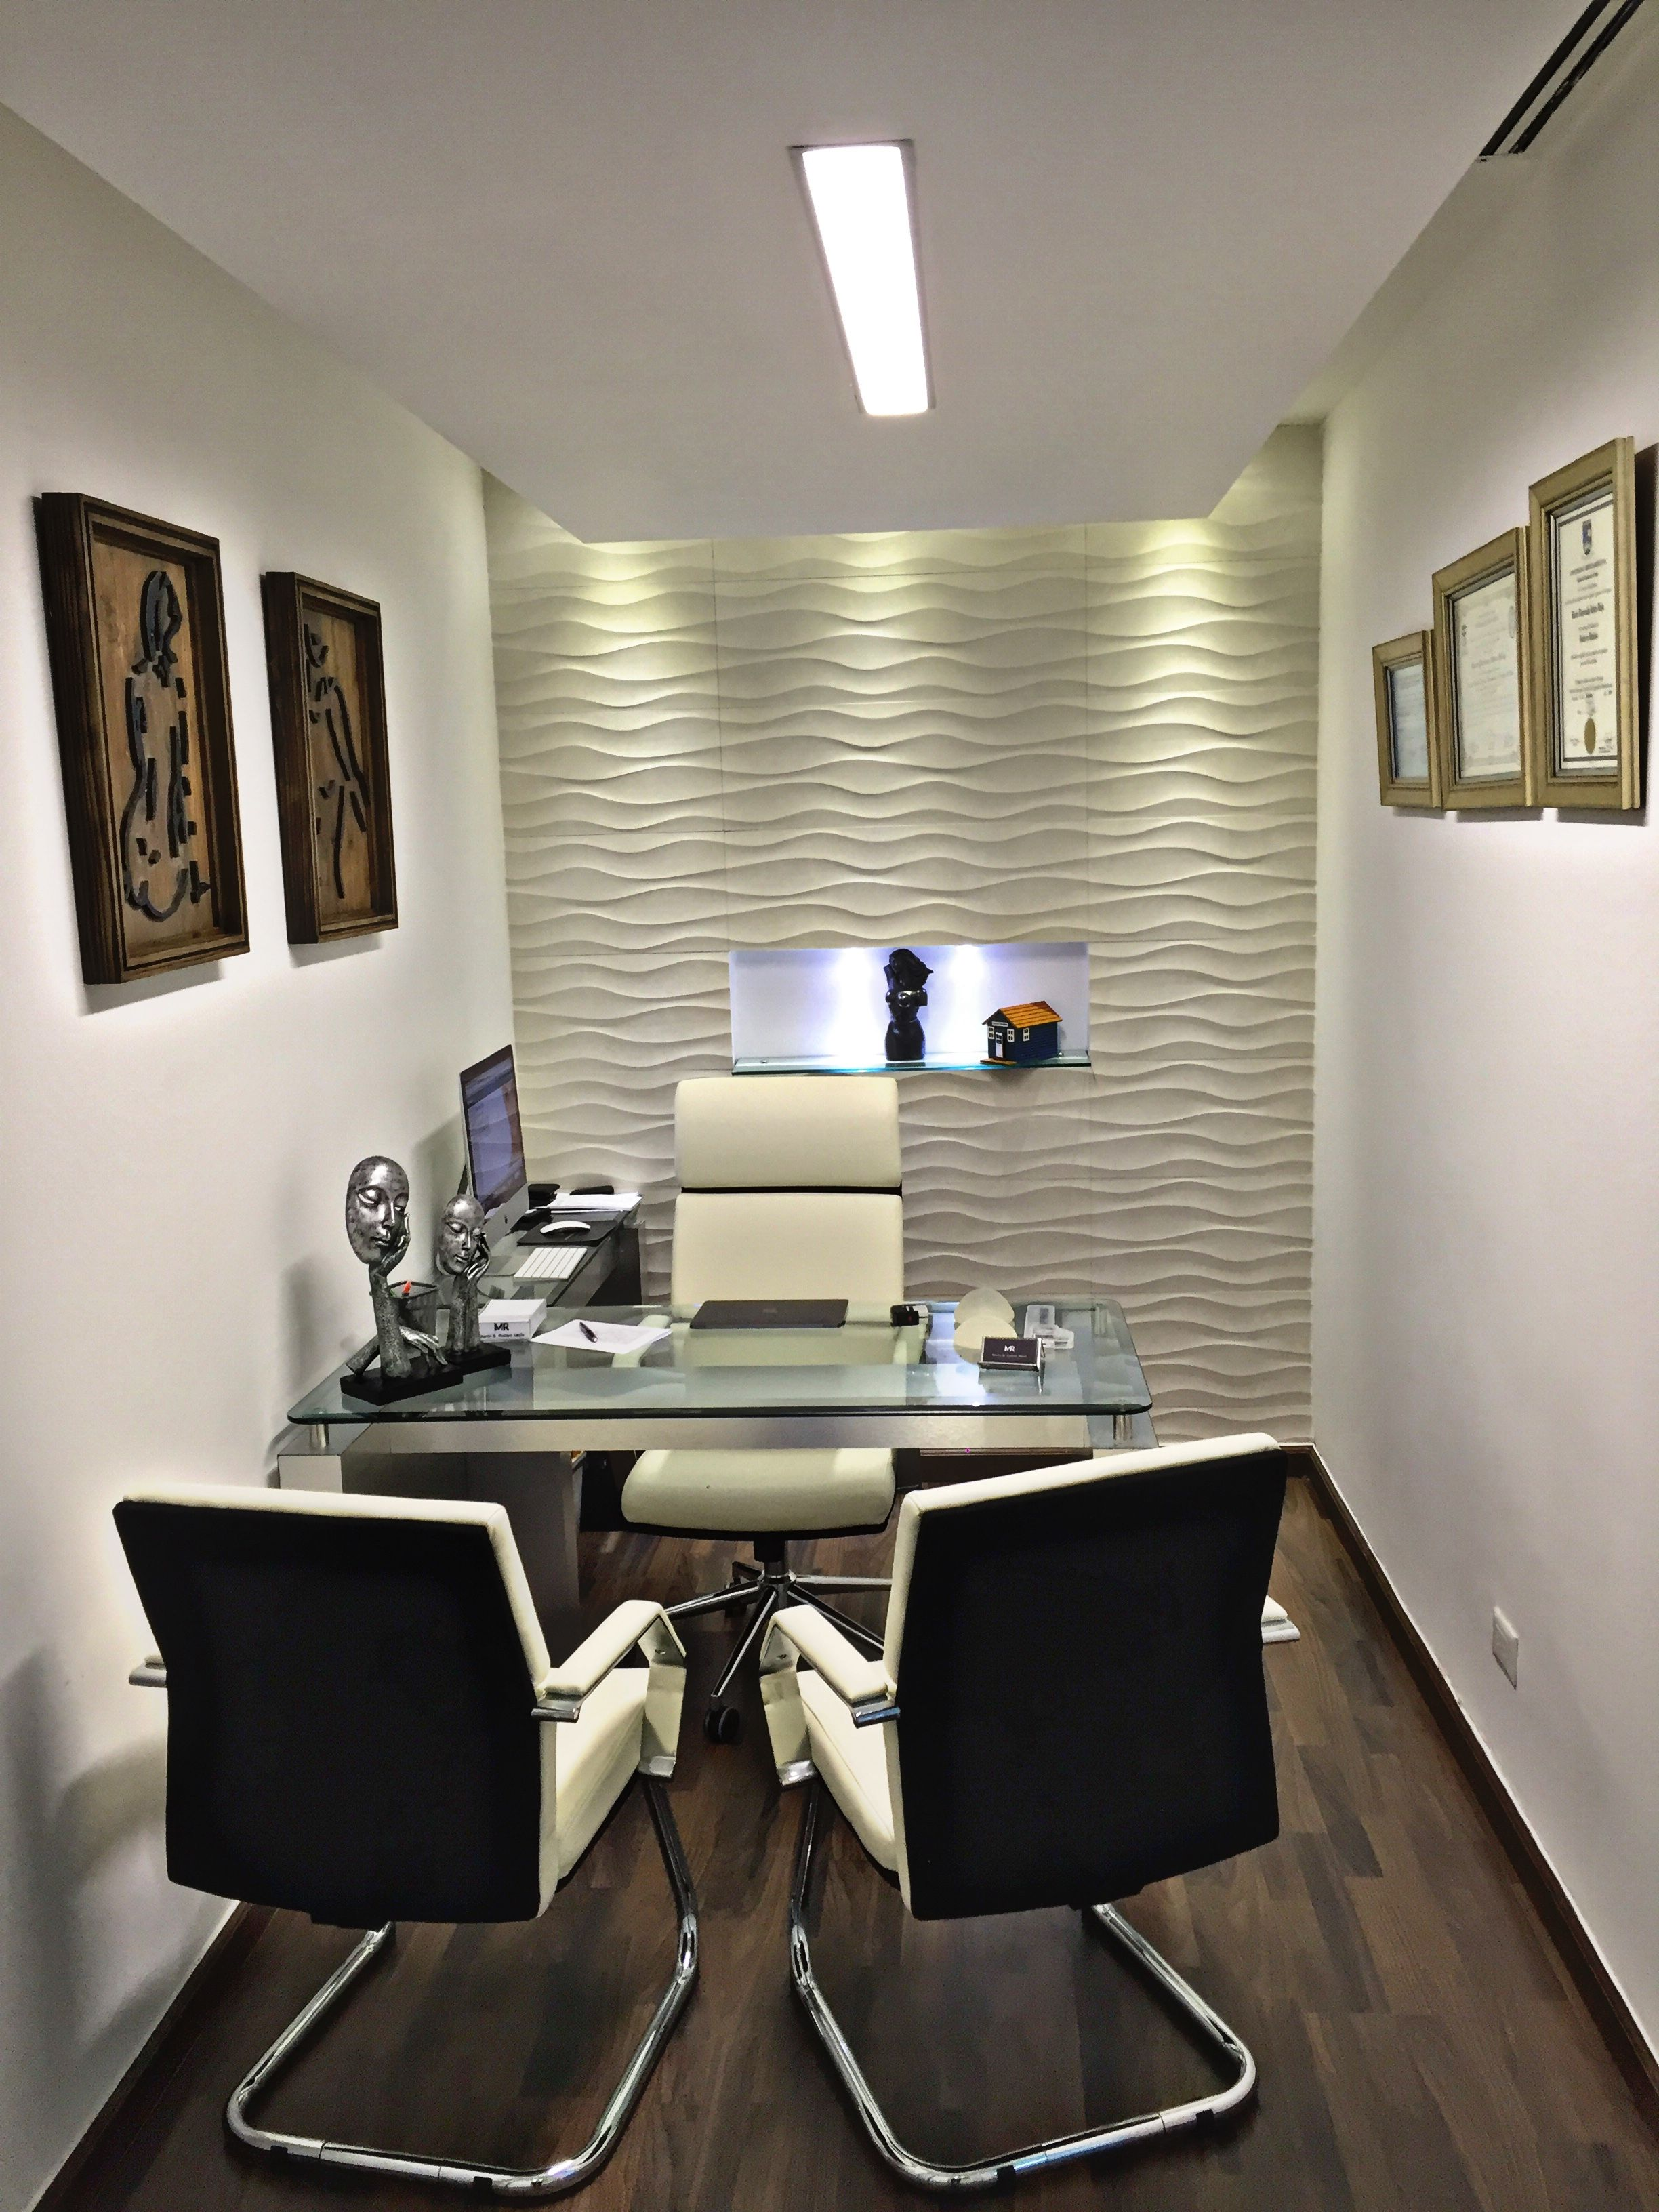 Dr m office santo domingo dominican republic for M design interiors